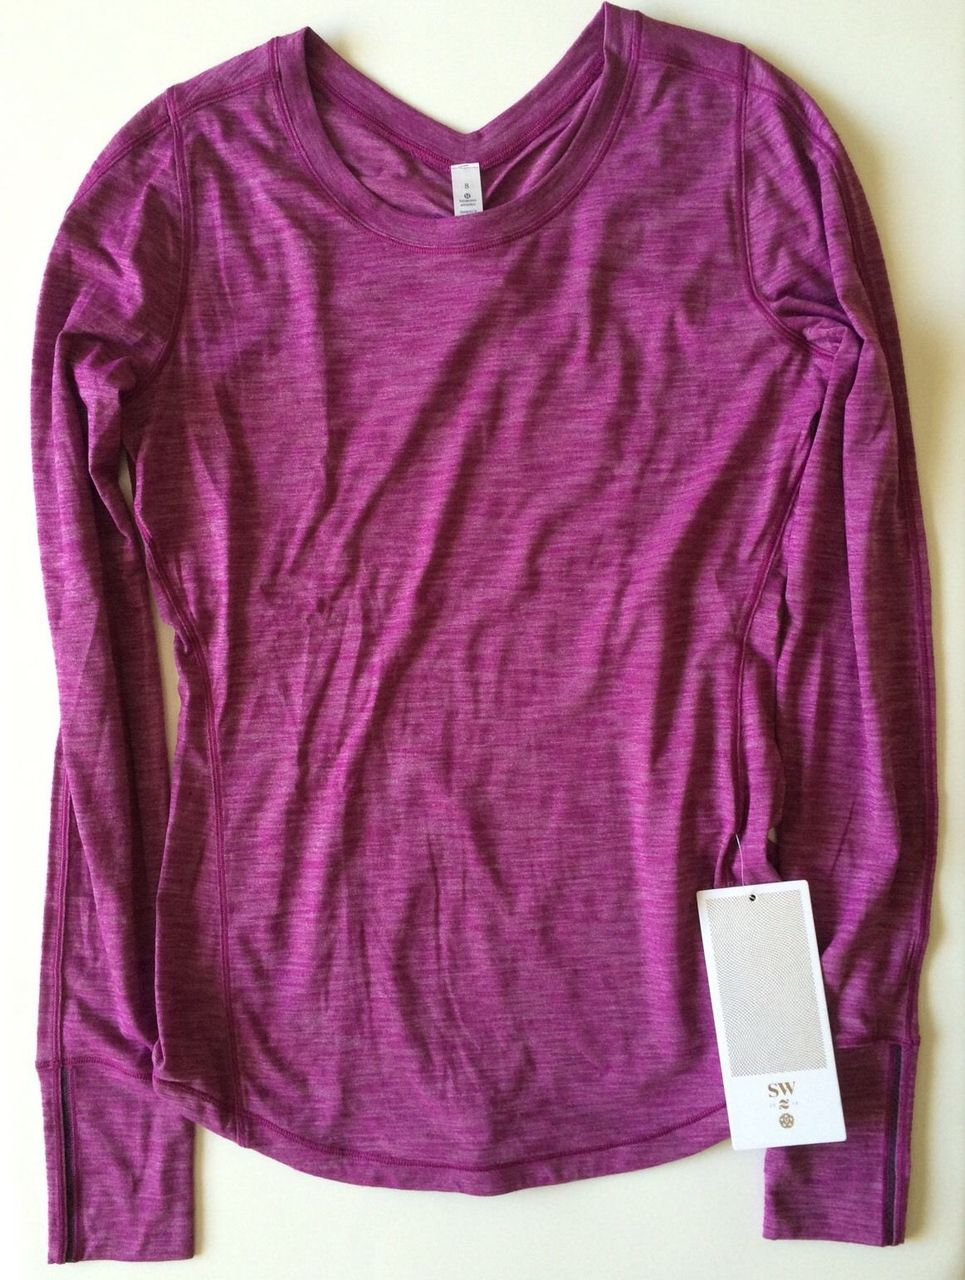 Lululemon 5 Mile Long Sleeve - 2016 Seawheeze - Heathered Regal Plum